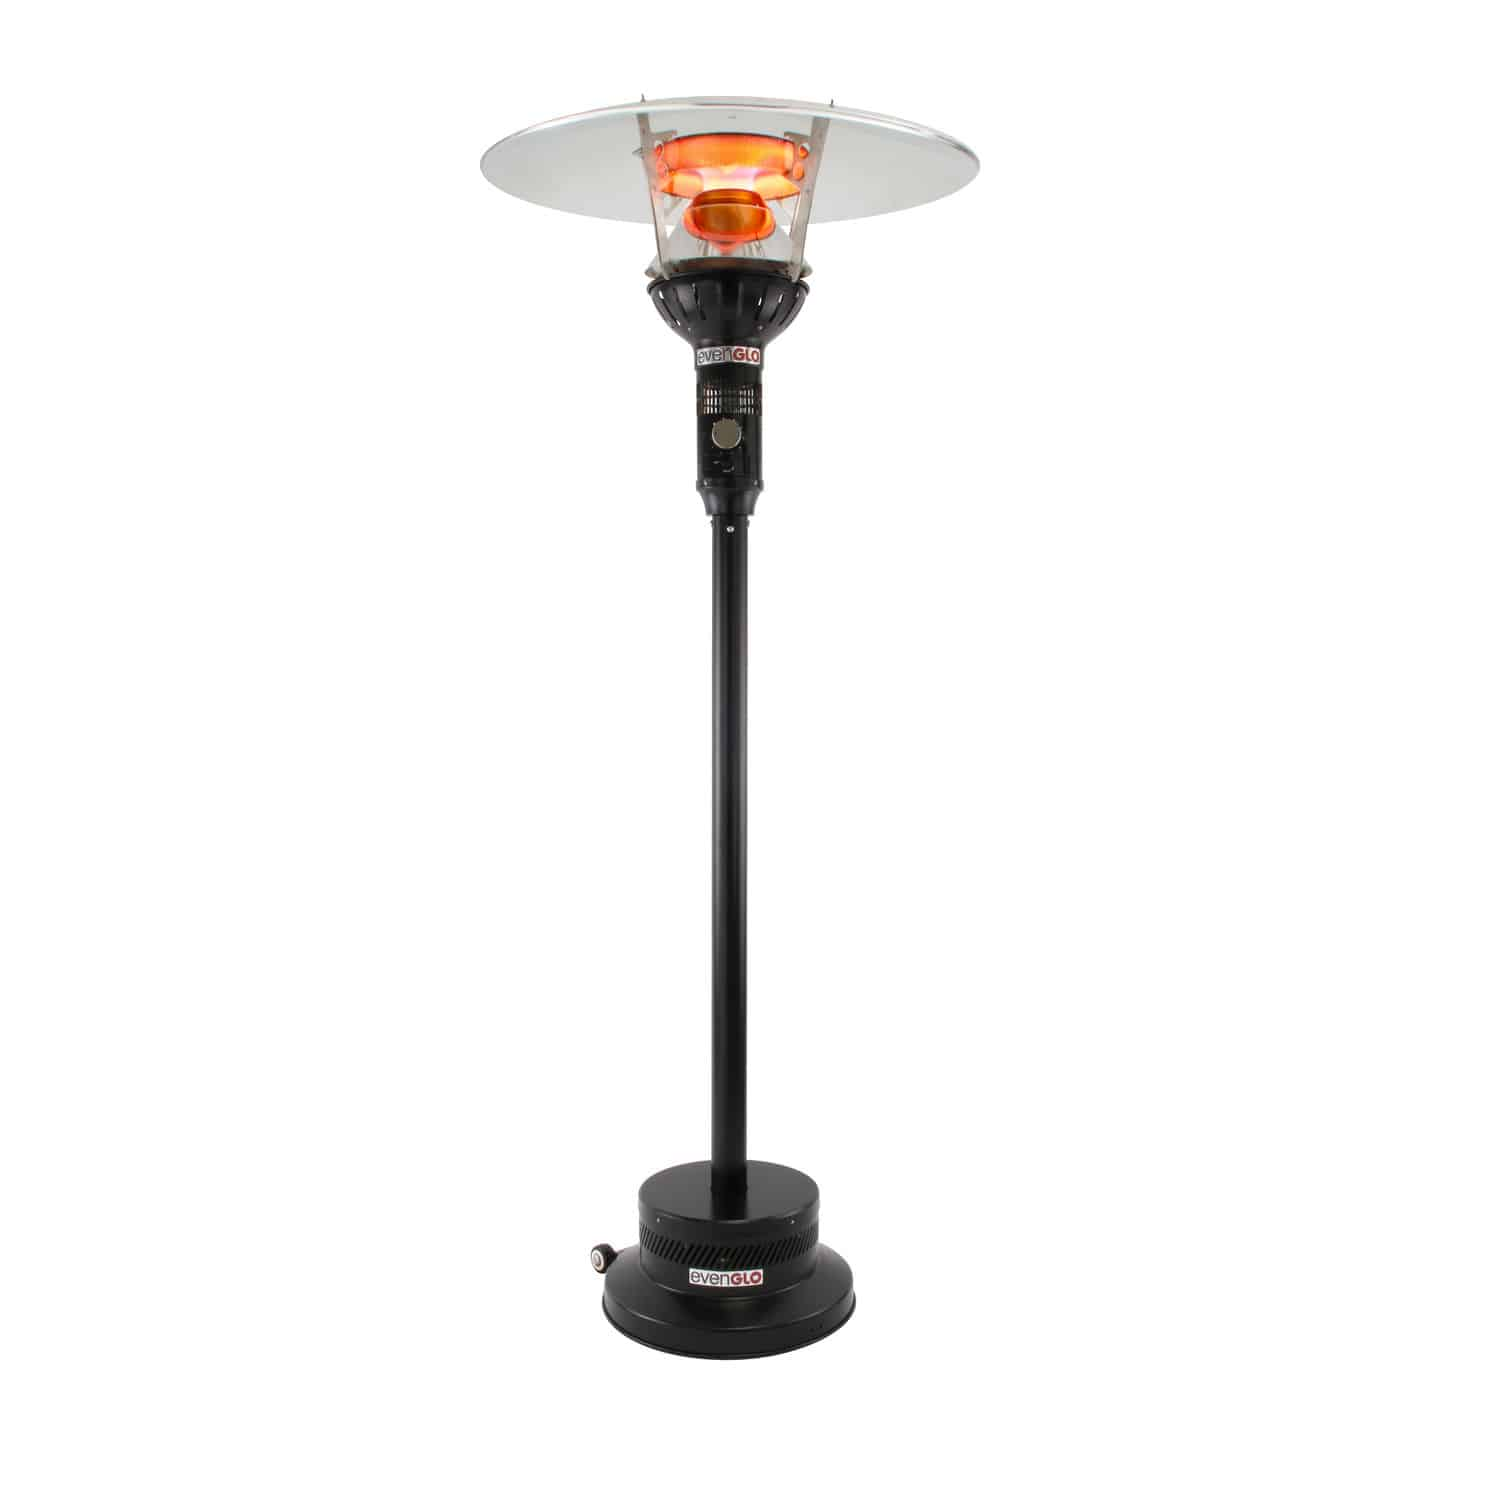 floor mounted infrared patio heater gas portable evenglo ga301mp - Infrared Patio Heater